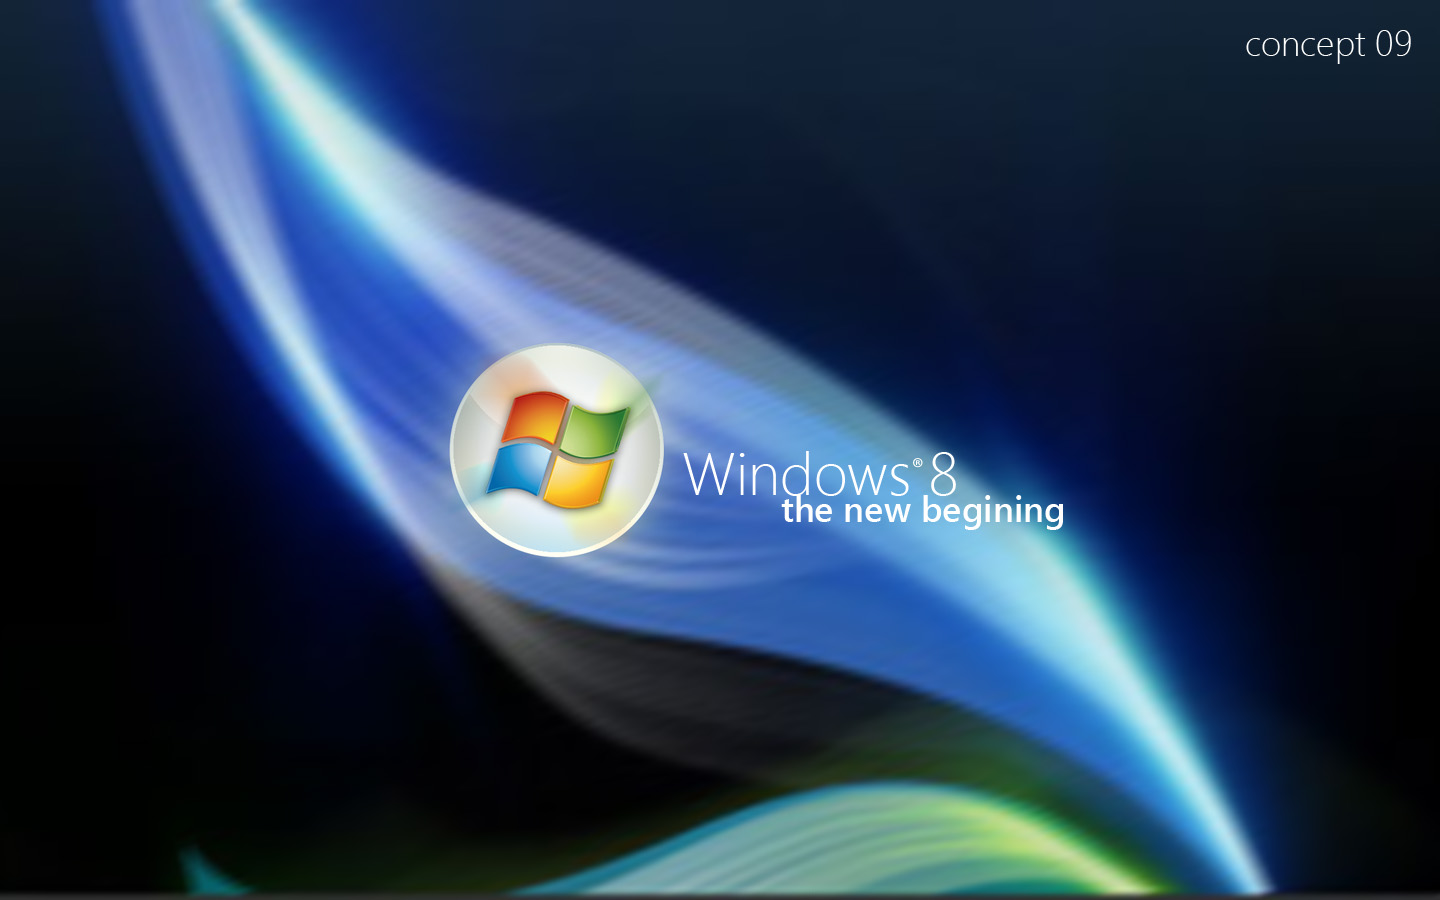 Super Cool Windows 8 Wallpapers HD   Ars Pc Zone 1440x900